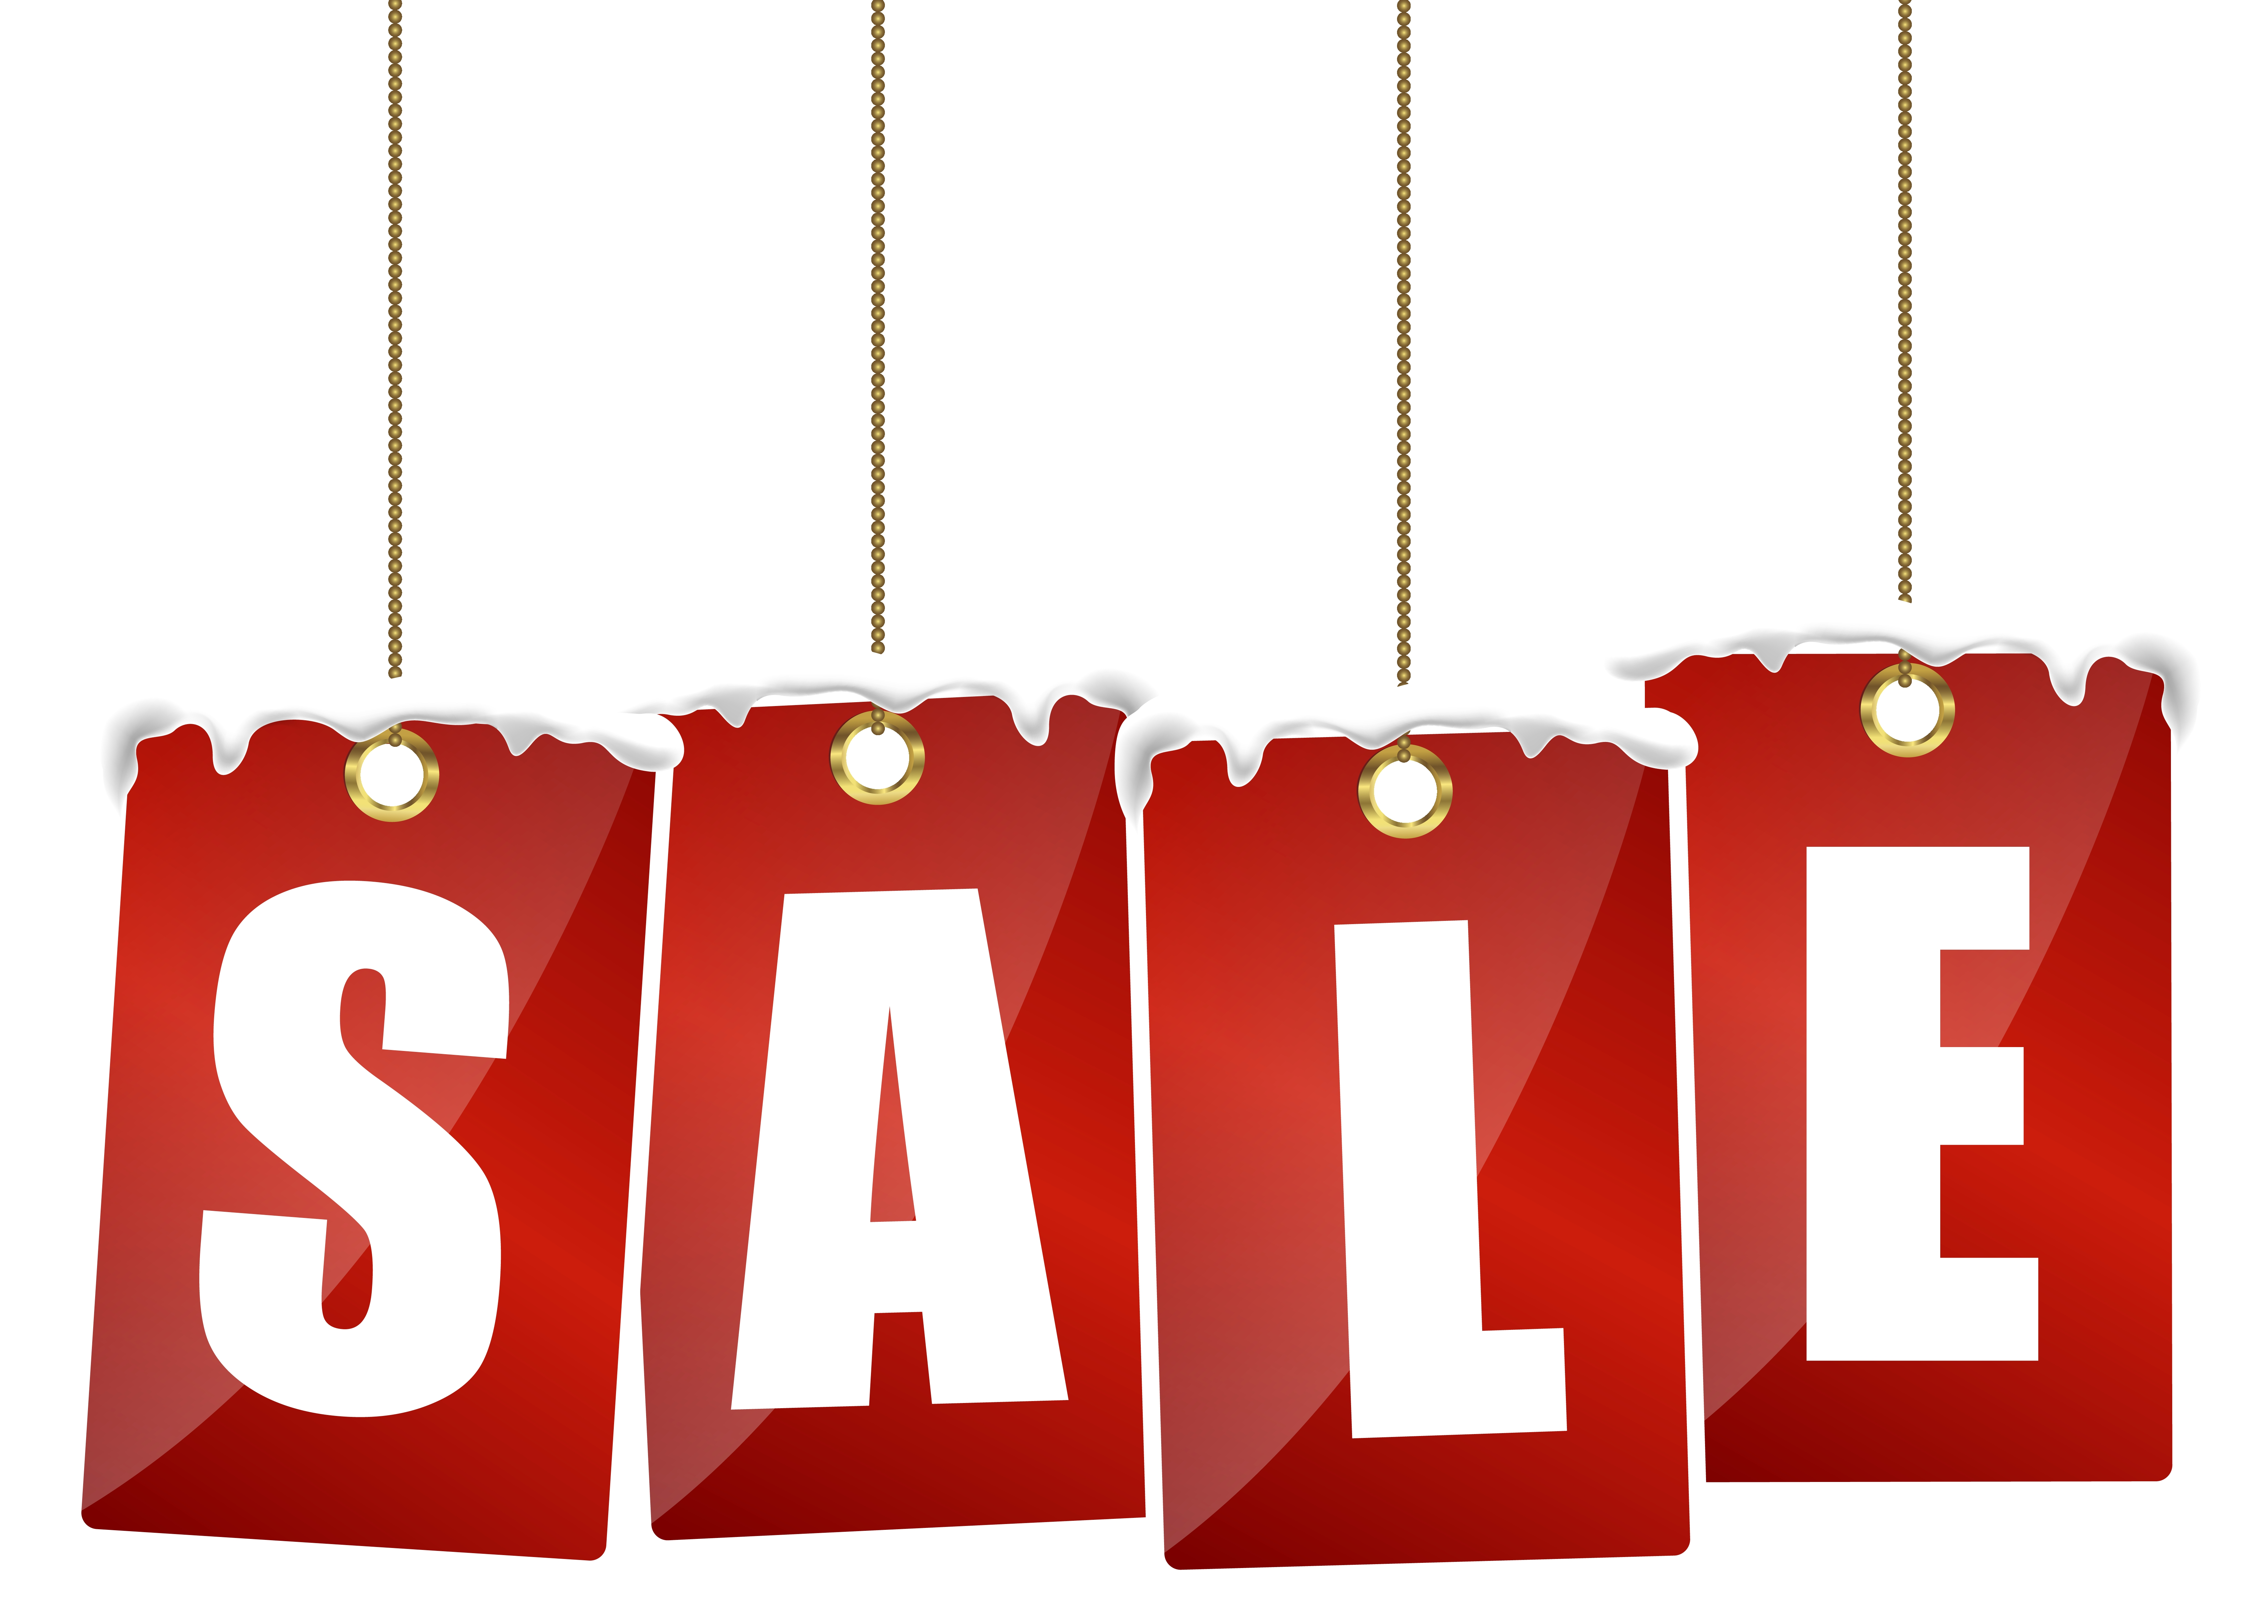 Sale clipart red. Awesome gallery digital collection